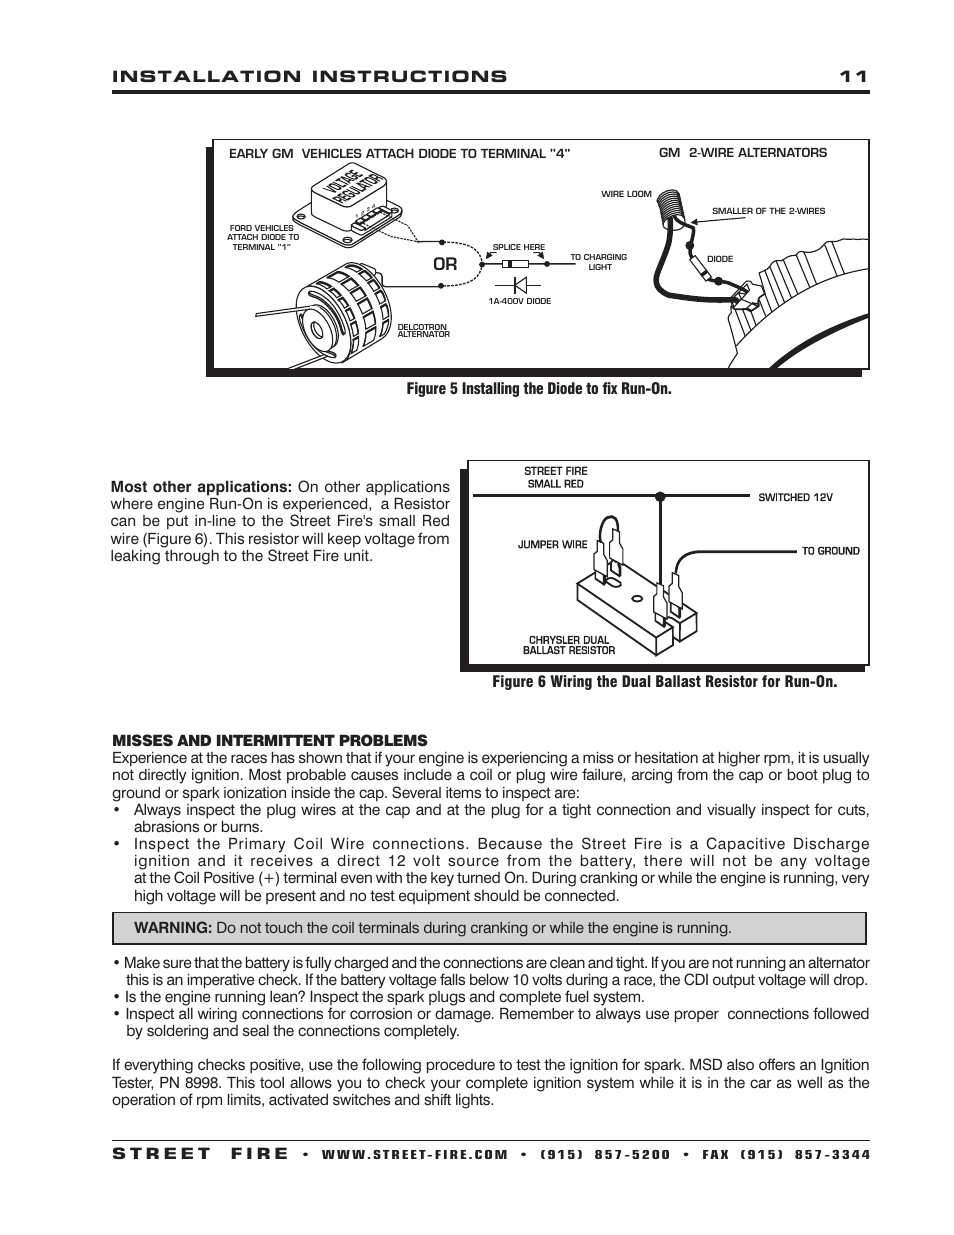 medium resolution of msd 5520 street fire ignition control installation user manual page 11 12